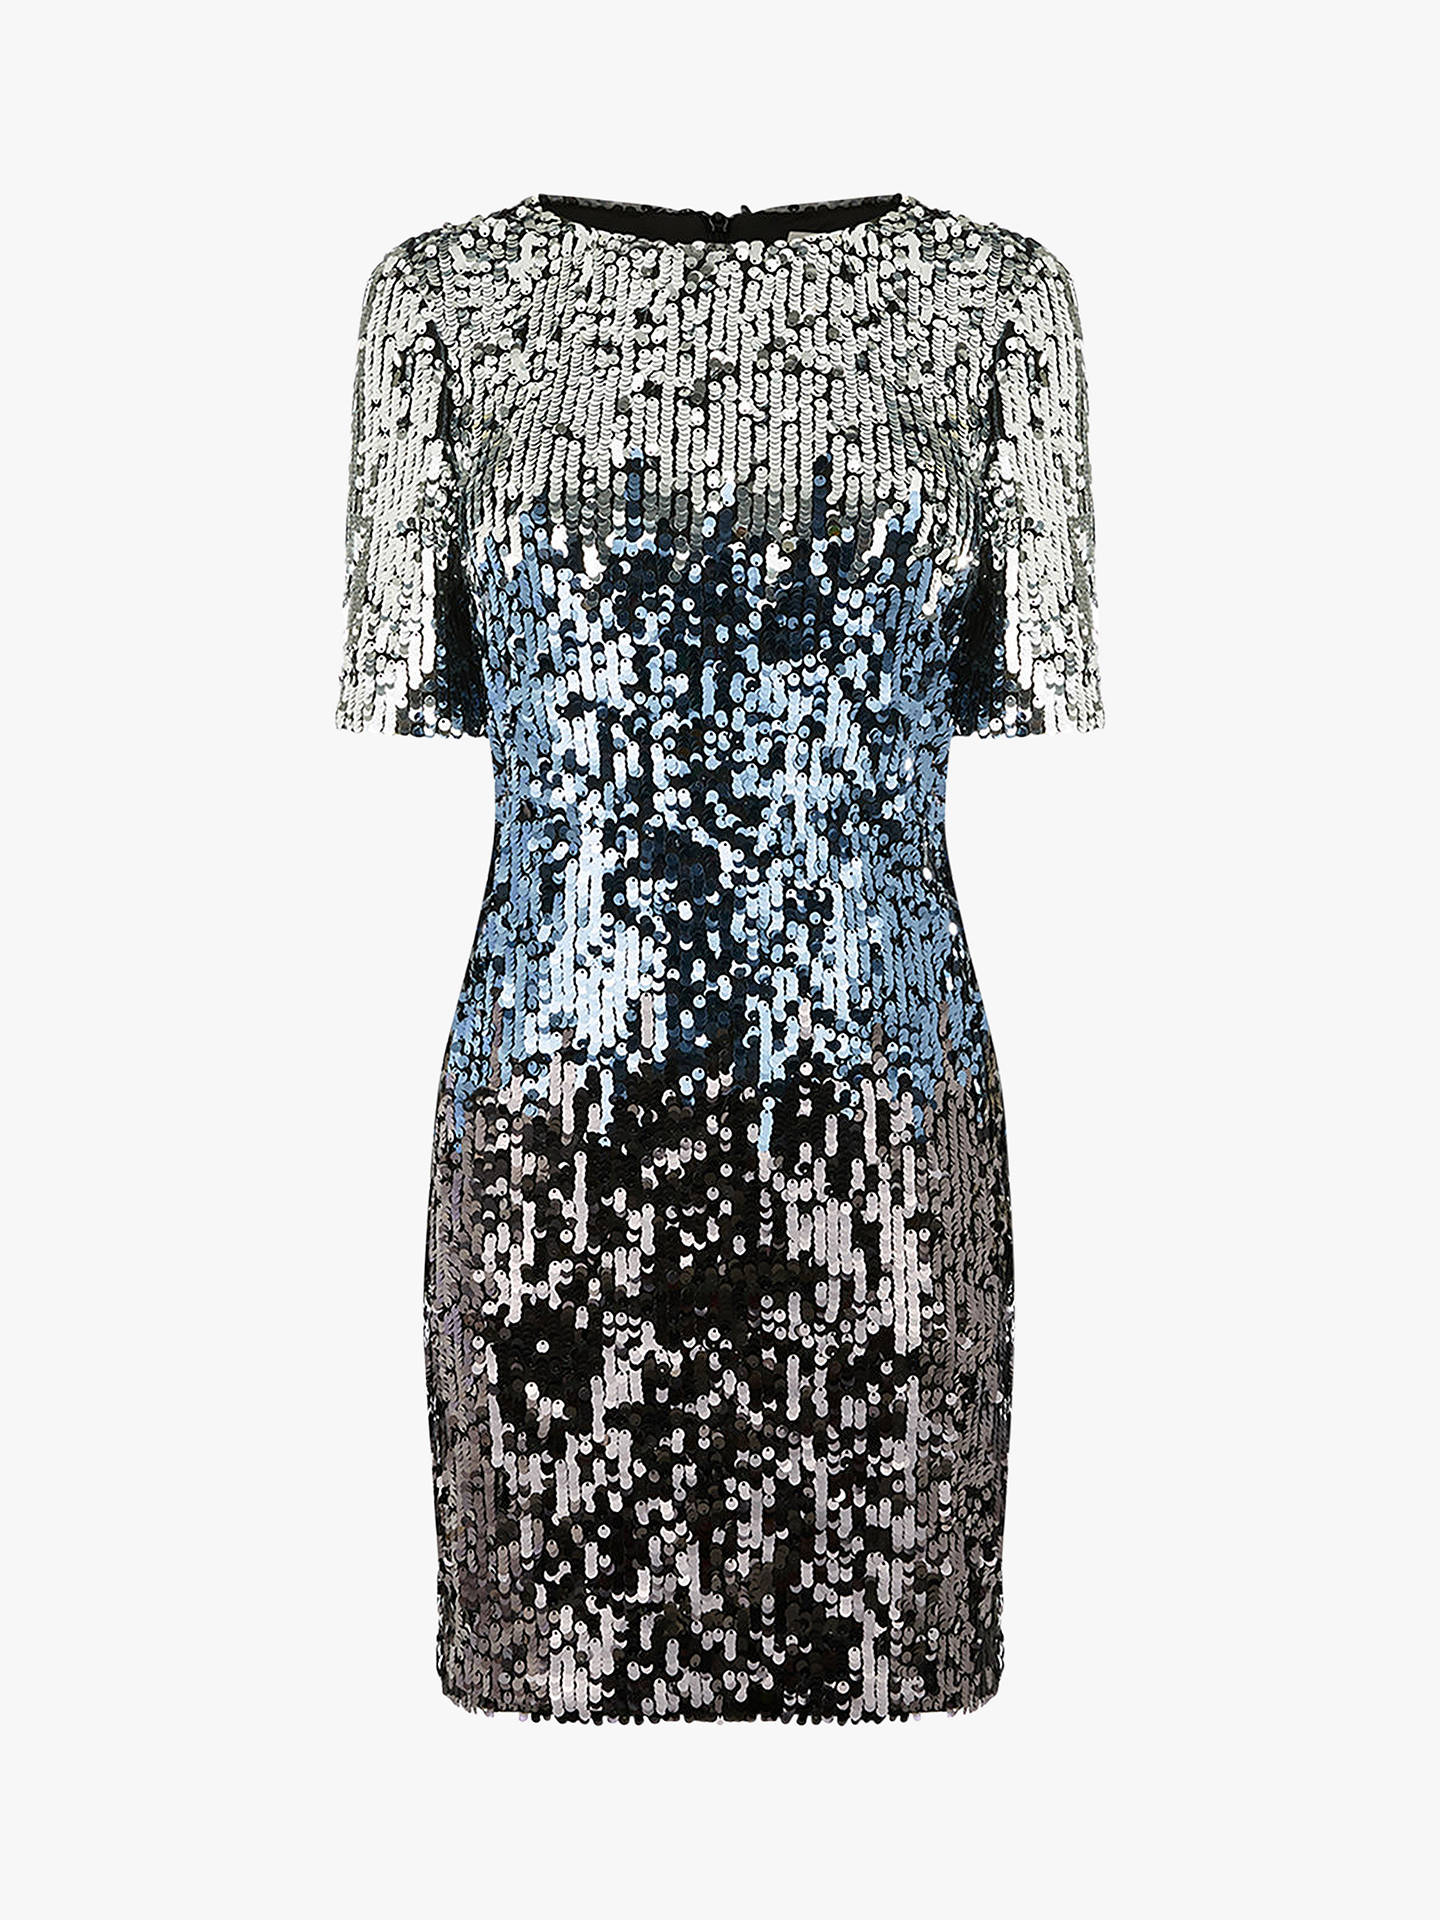 9f9a28c25c2c Buy Oasis Ombre Sequin Shift Dress, Multi/Silver, S Online at johnlewis.